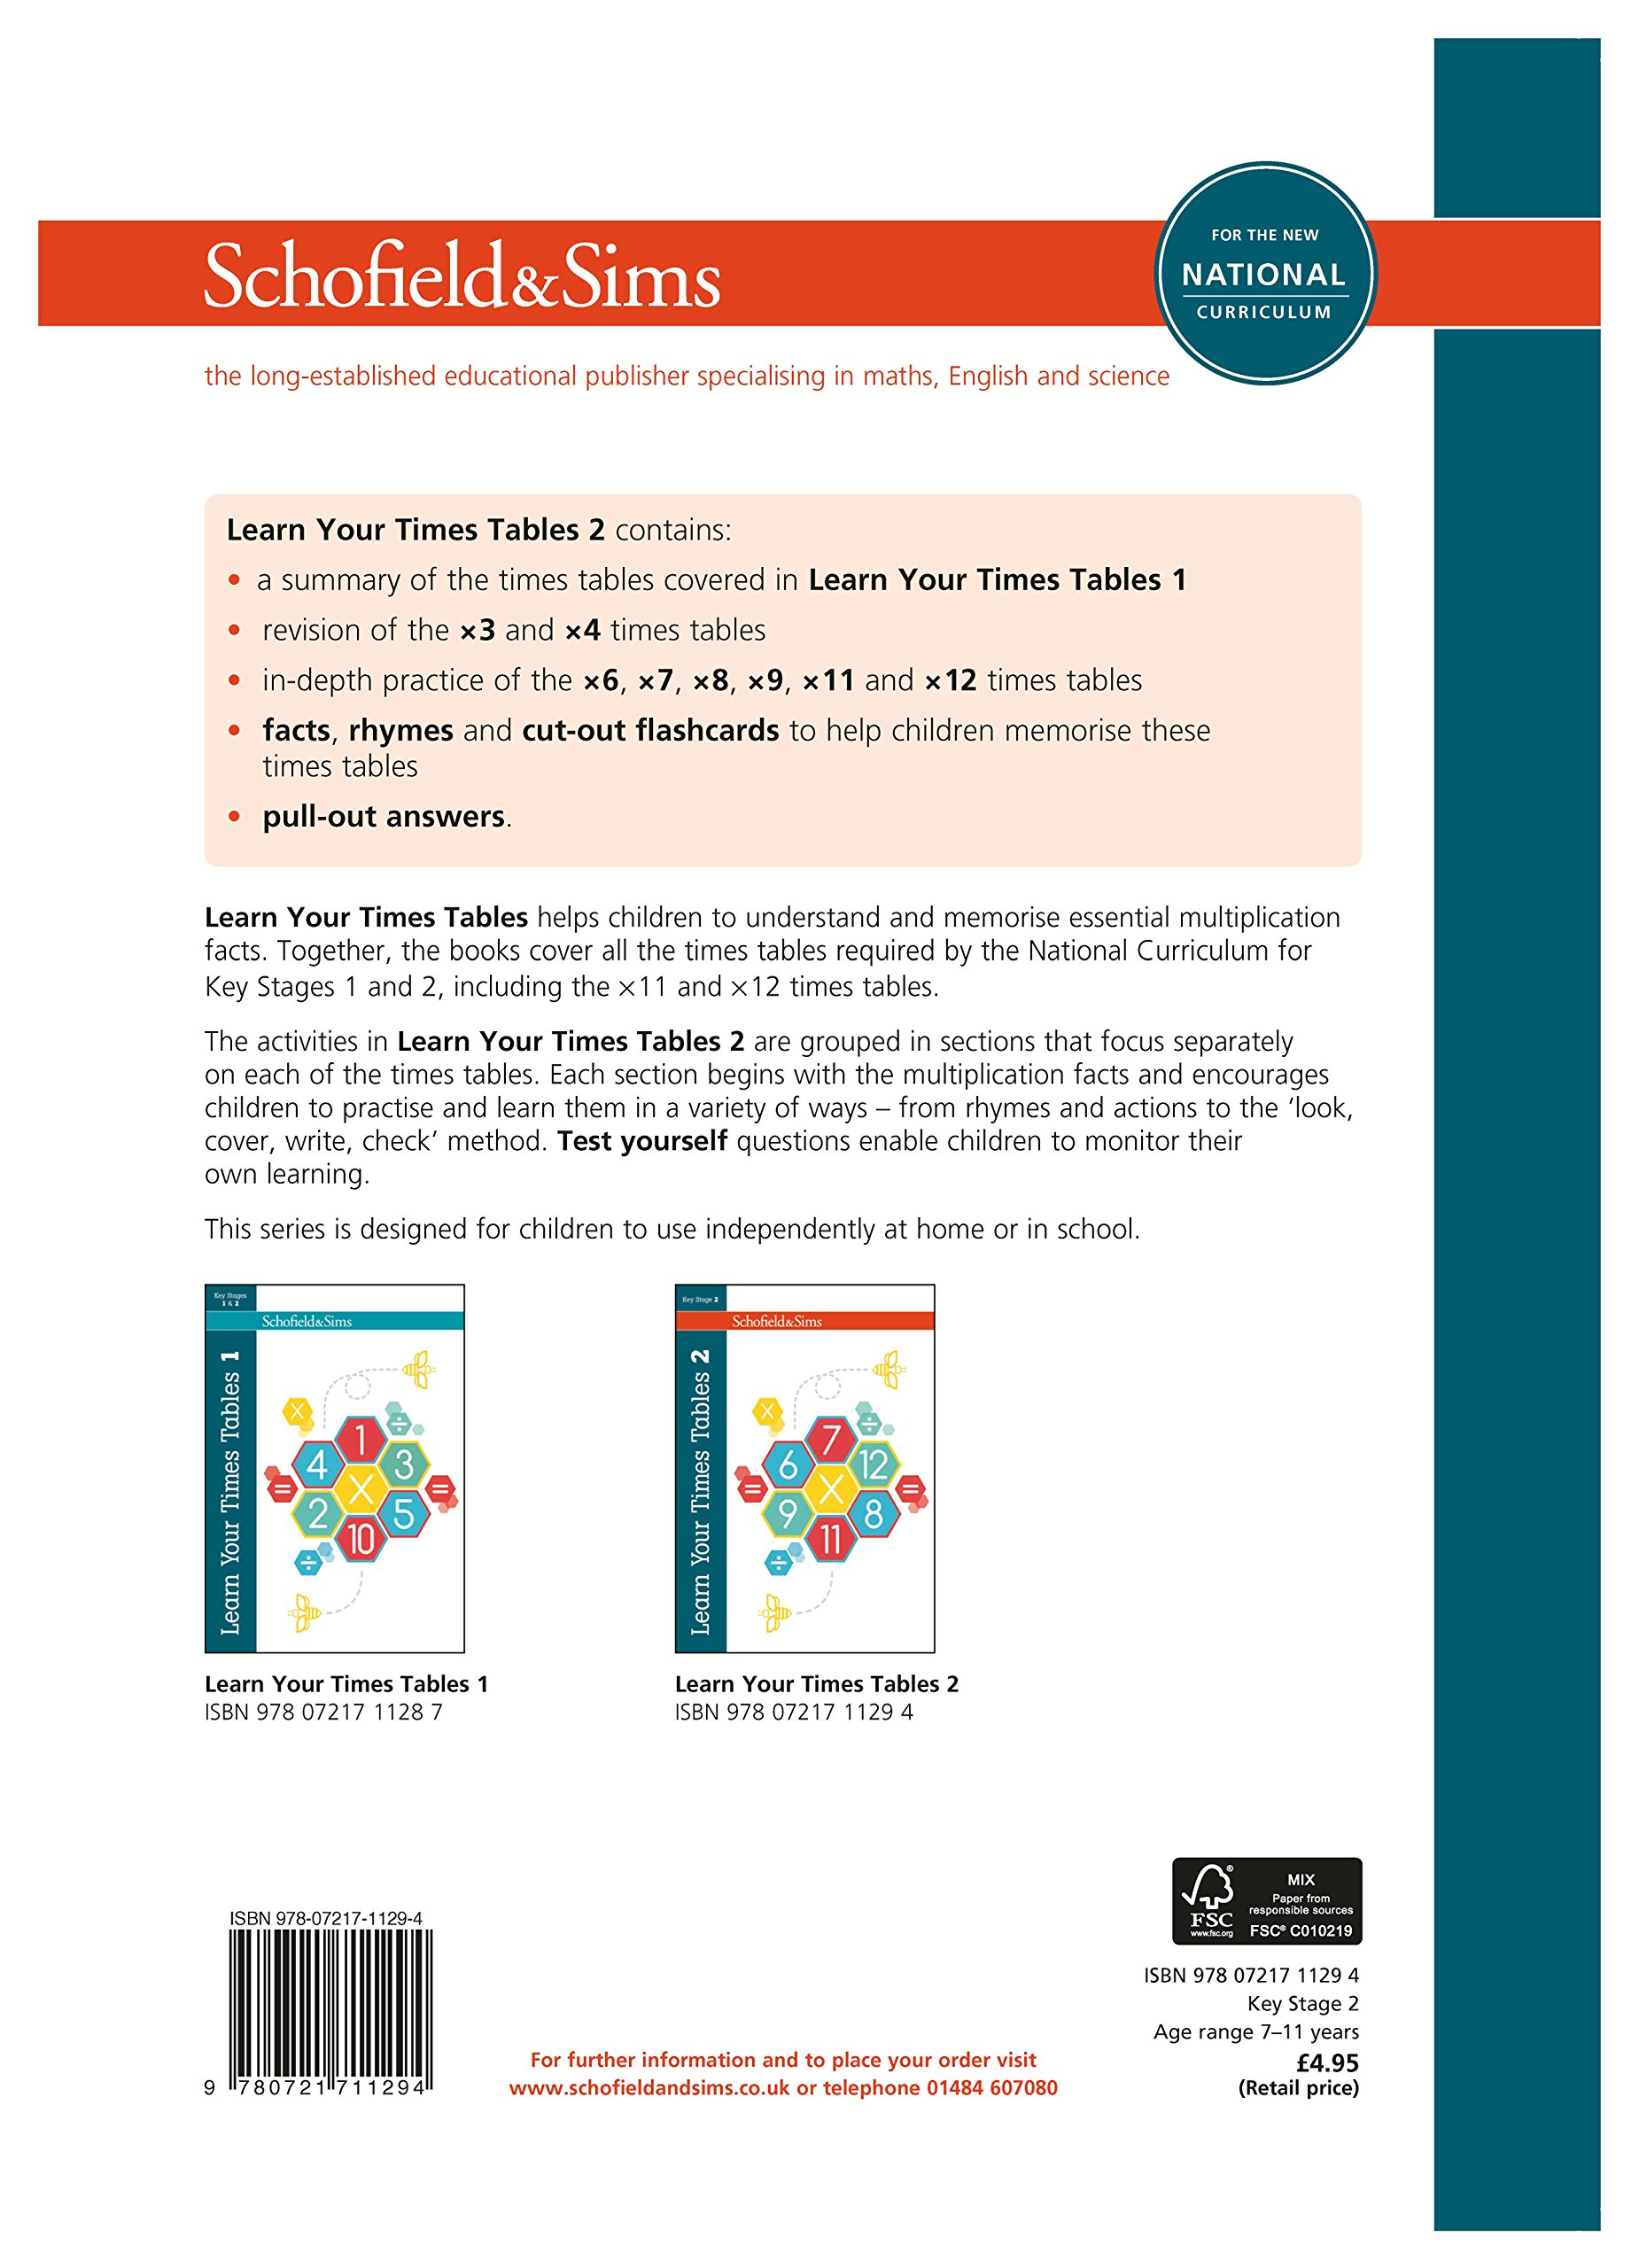 Learn your times tables 2 ks2 maths ages 7 11 amazon learn your times tables 2 ks2 maths ages 7 11 amazon schofield sims steve mills hilary koll 9780721711294 books gamestrikefo Choice Image